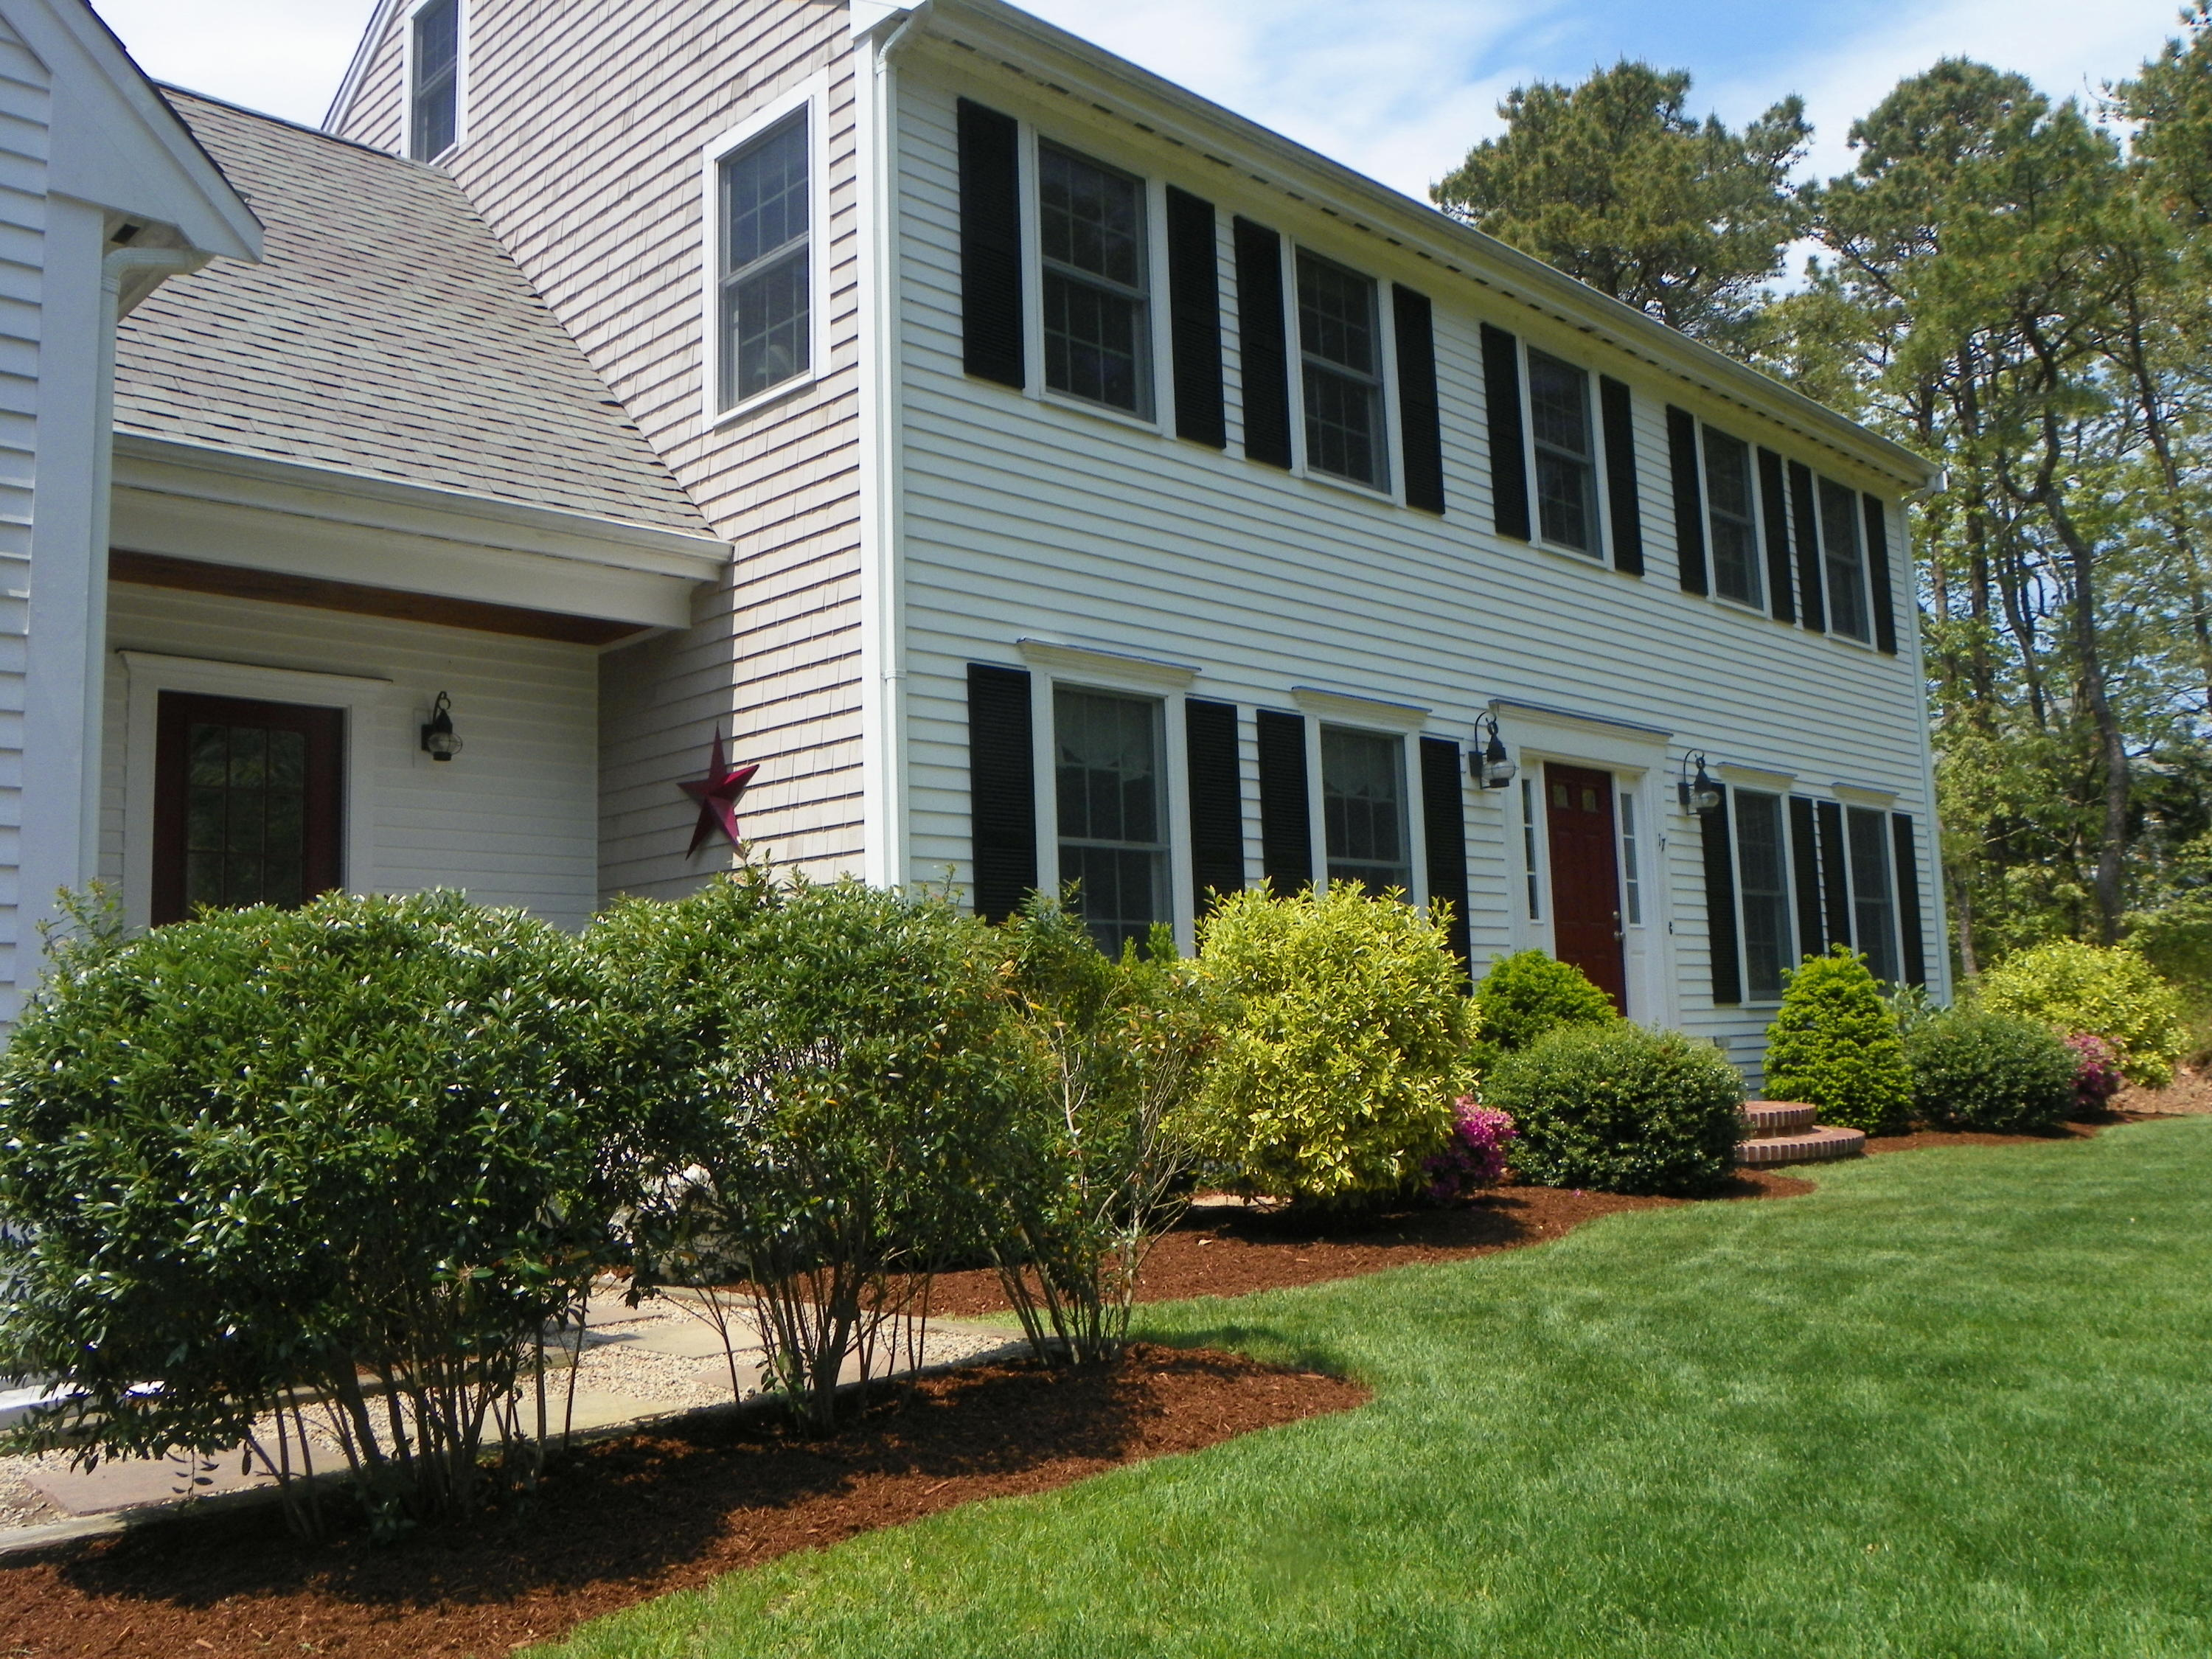 17 Chase Garden Lane, Yarmouth Port MA, 02675 details